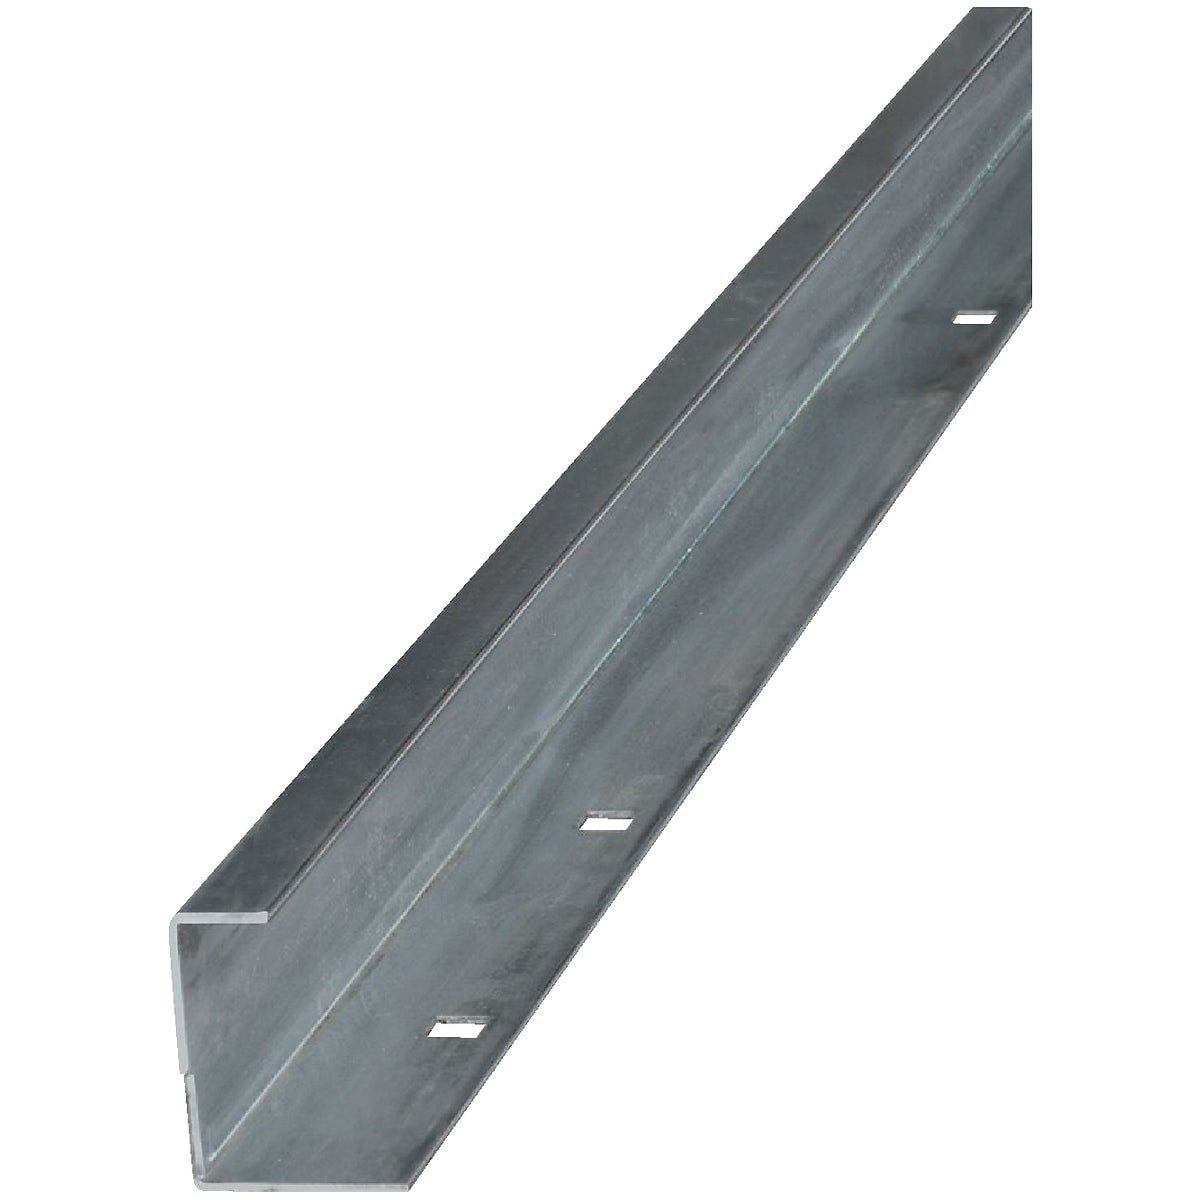 6004 6 GLV GUIDE RAIL